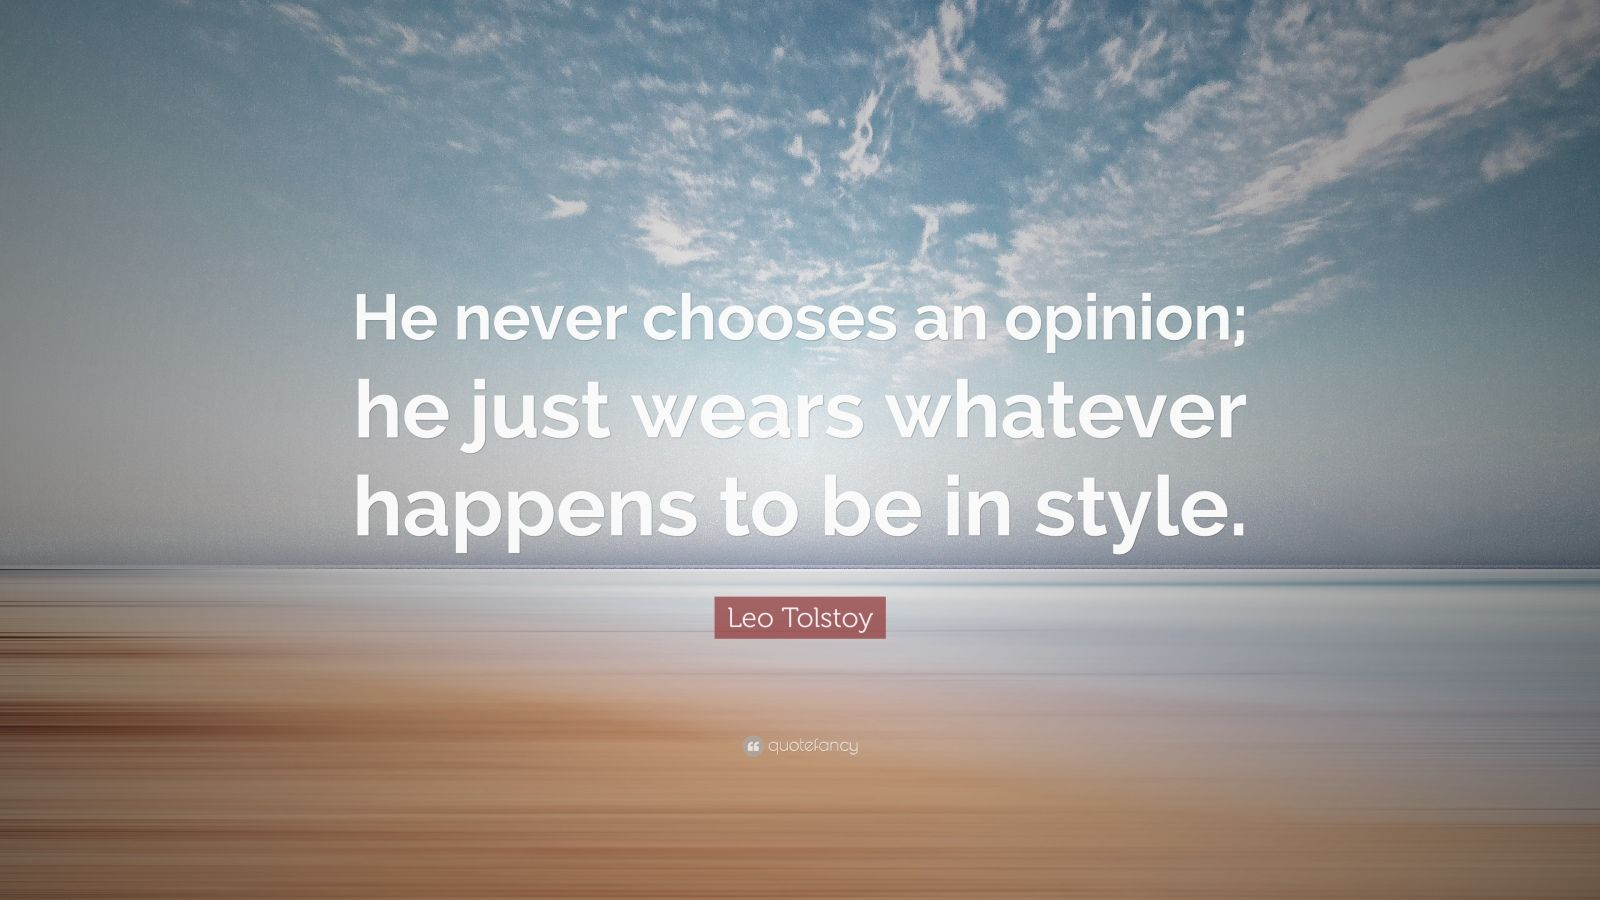 """Leo Tolstoy Quote: """"He never chooses an opinion; he just wears whatever happens to be in style."""""""